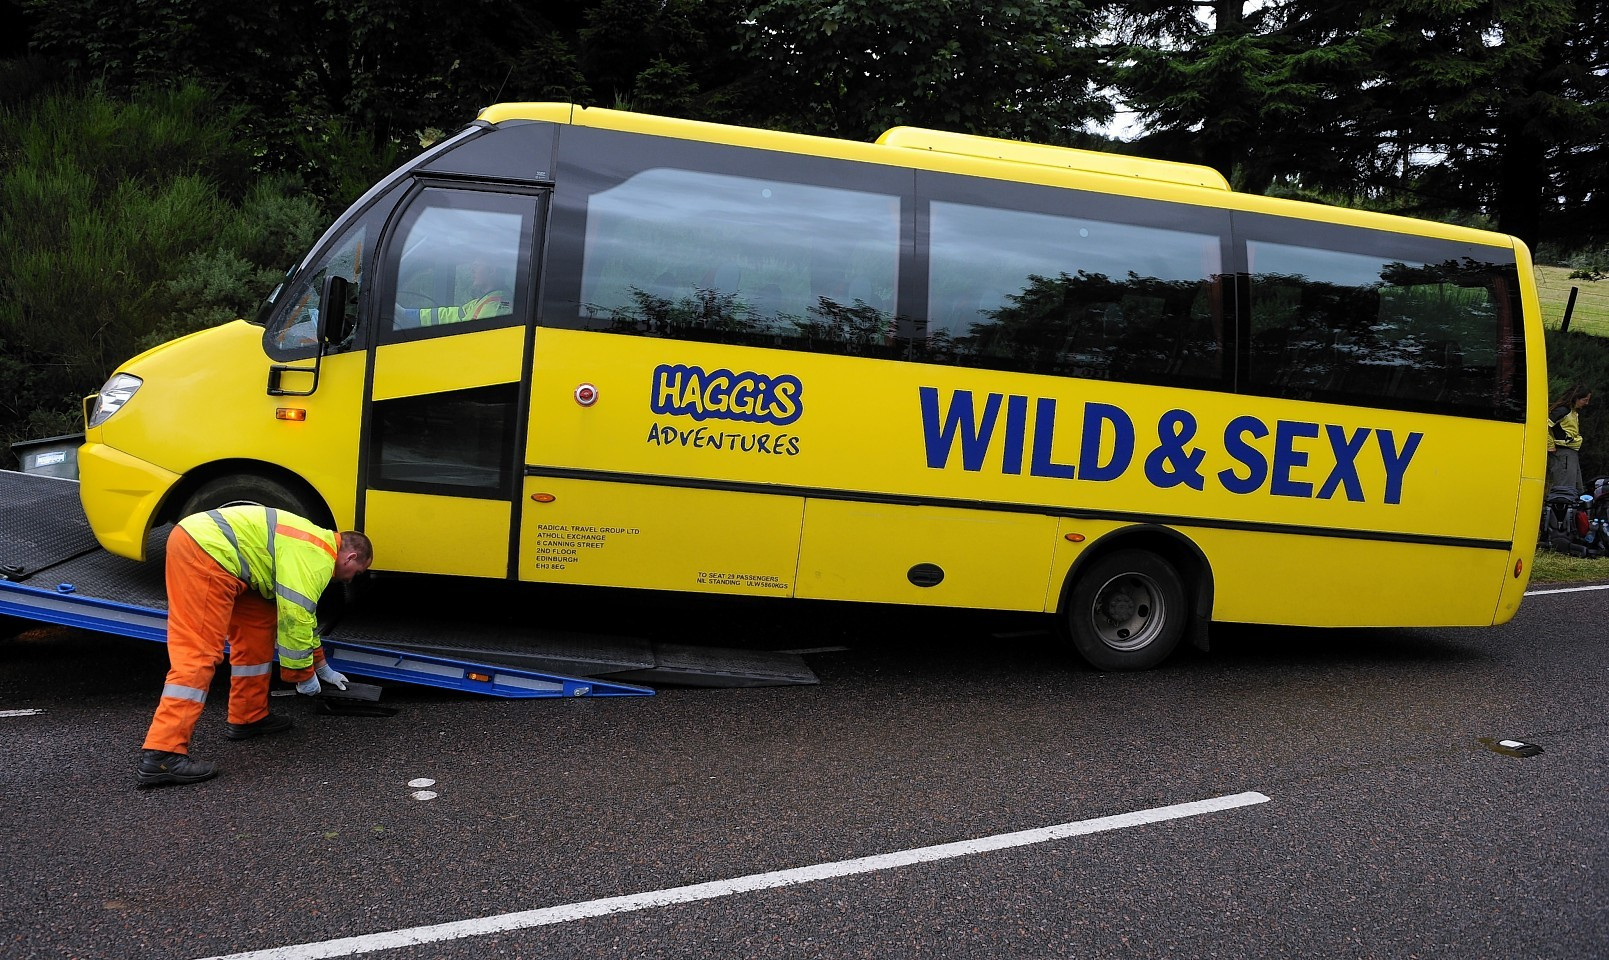 The Wild & Sexy bus was involved in a crash on the A82